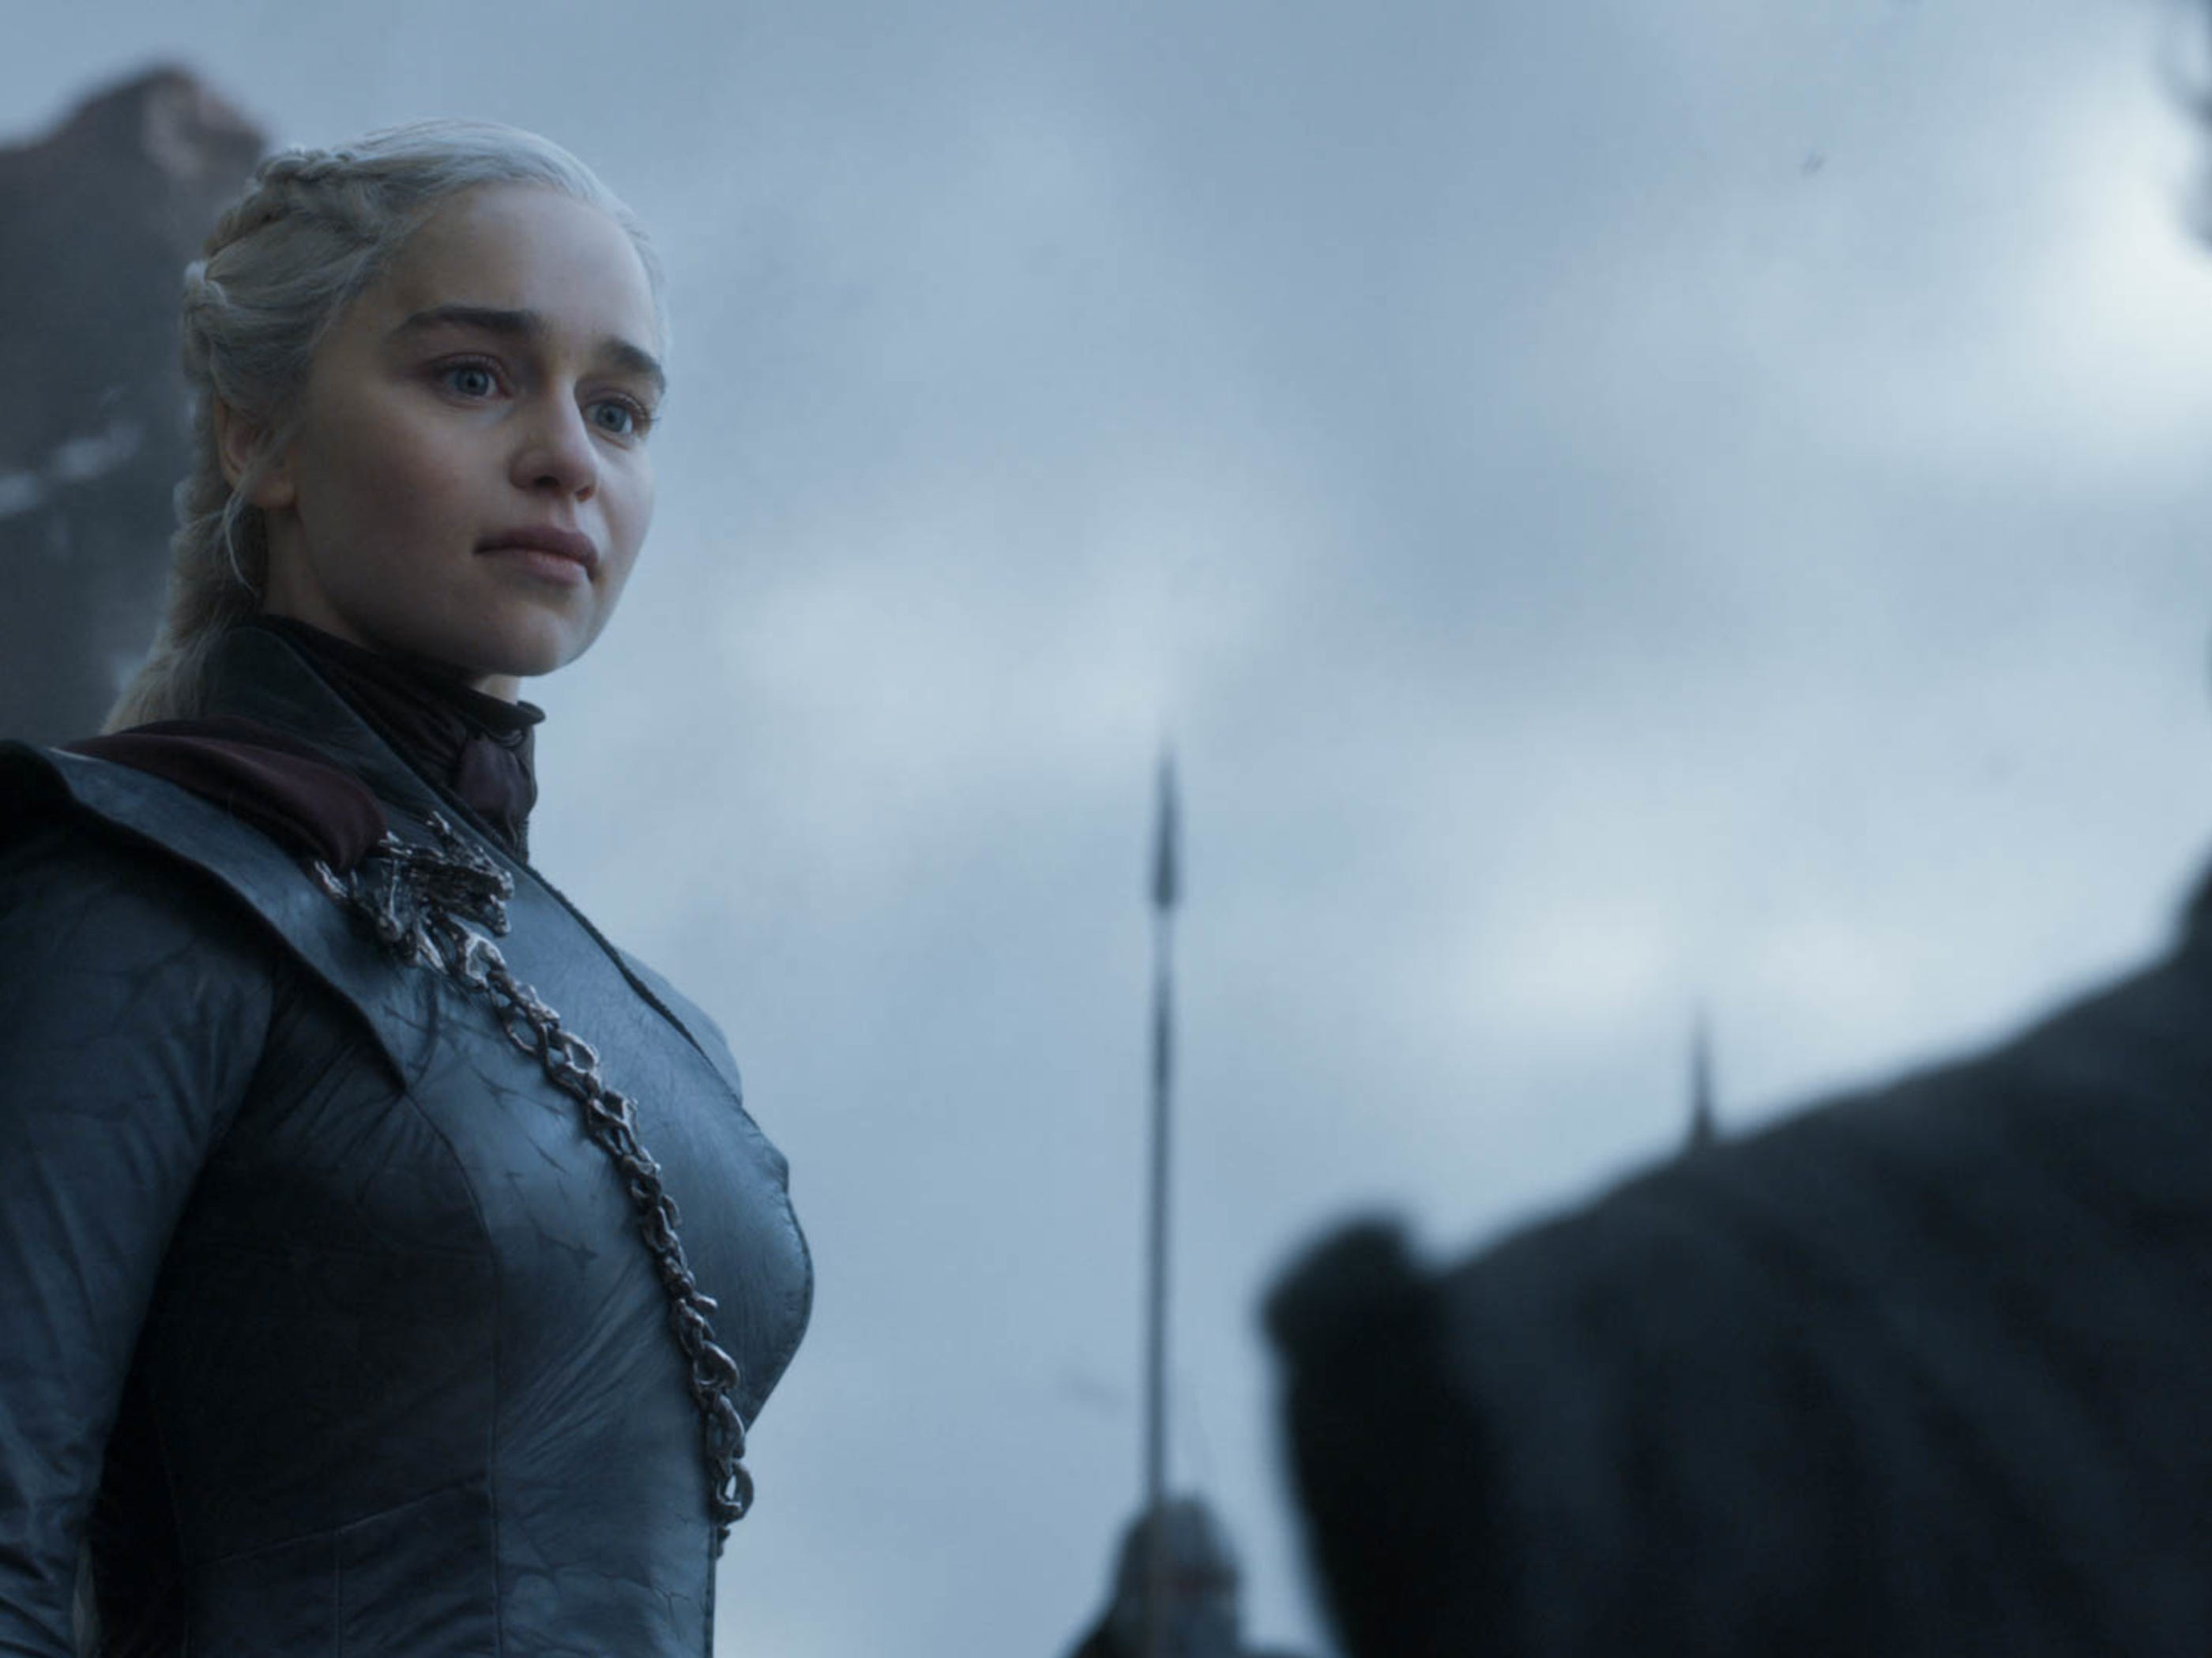 Daenerys Targaryen (Emilia Clarke) finally rules over the Seven Kingdoms, but for how long?